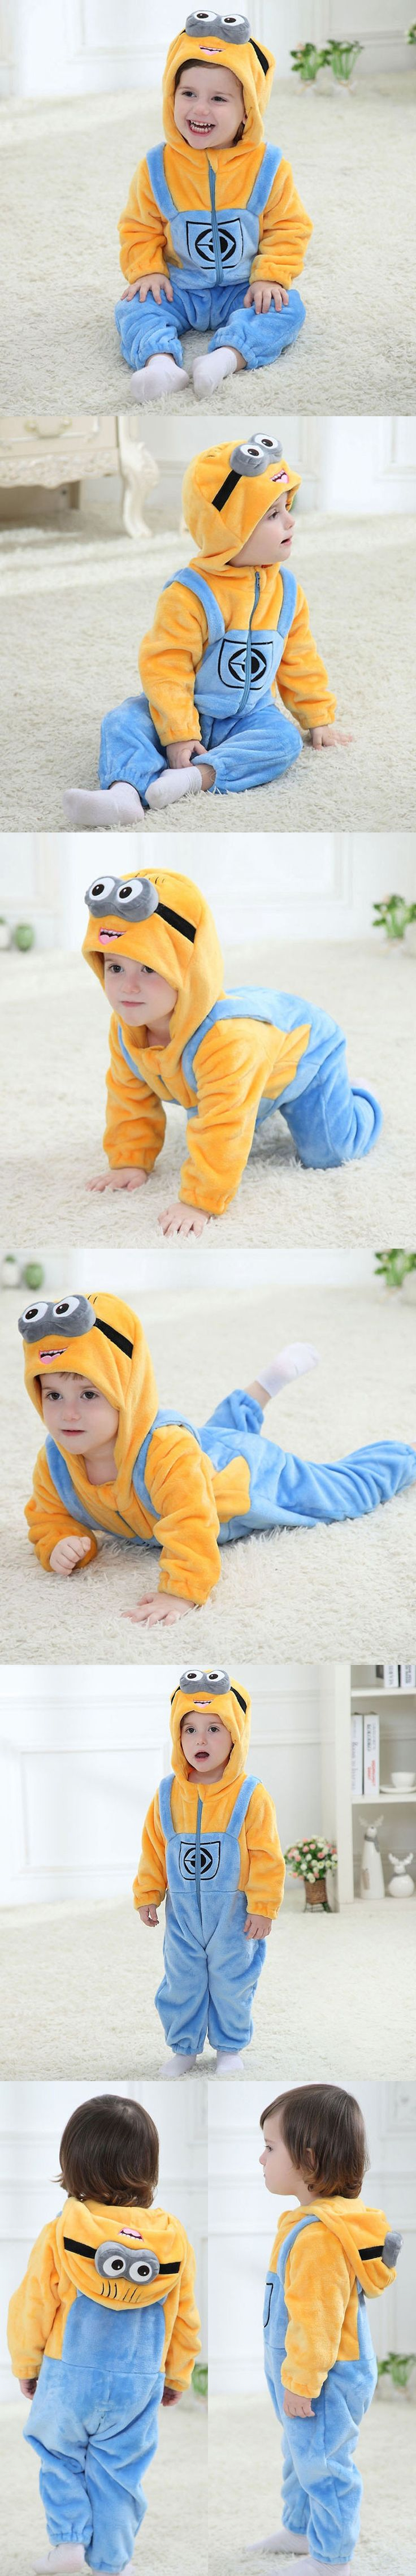 Minions Baby Clothes Romper Infant Costume 2016 New Spring Hooded Flannel Toddler Romper Infant Jumpsuit Clothing Baby Costume $22.18